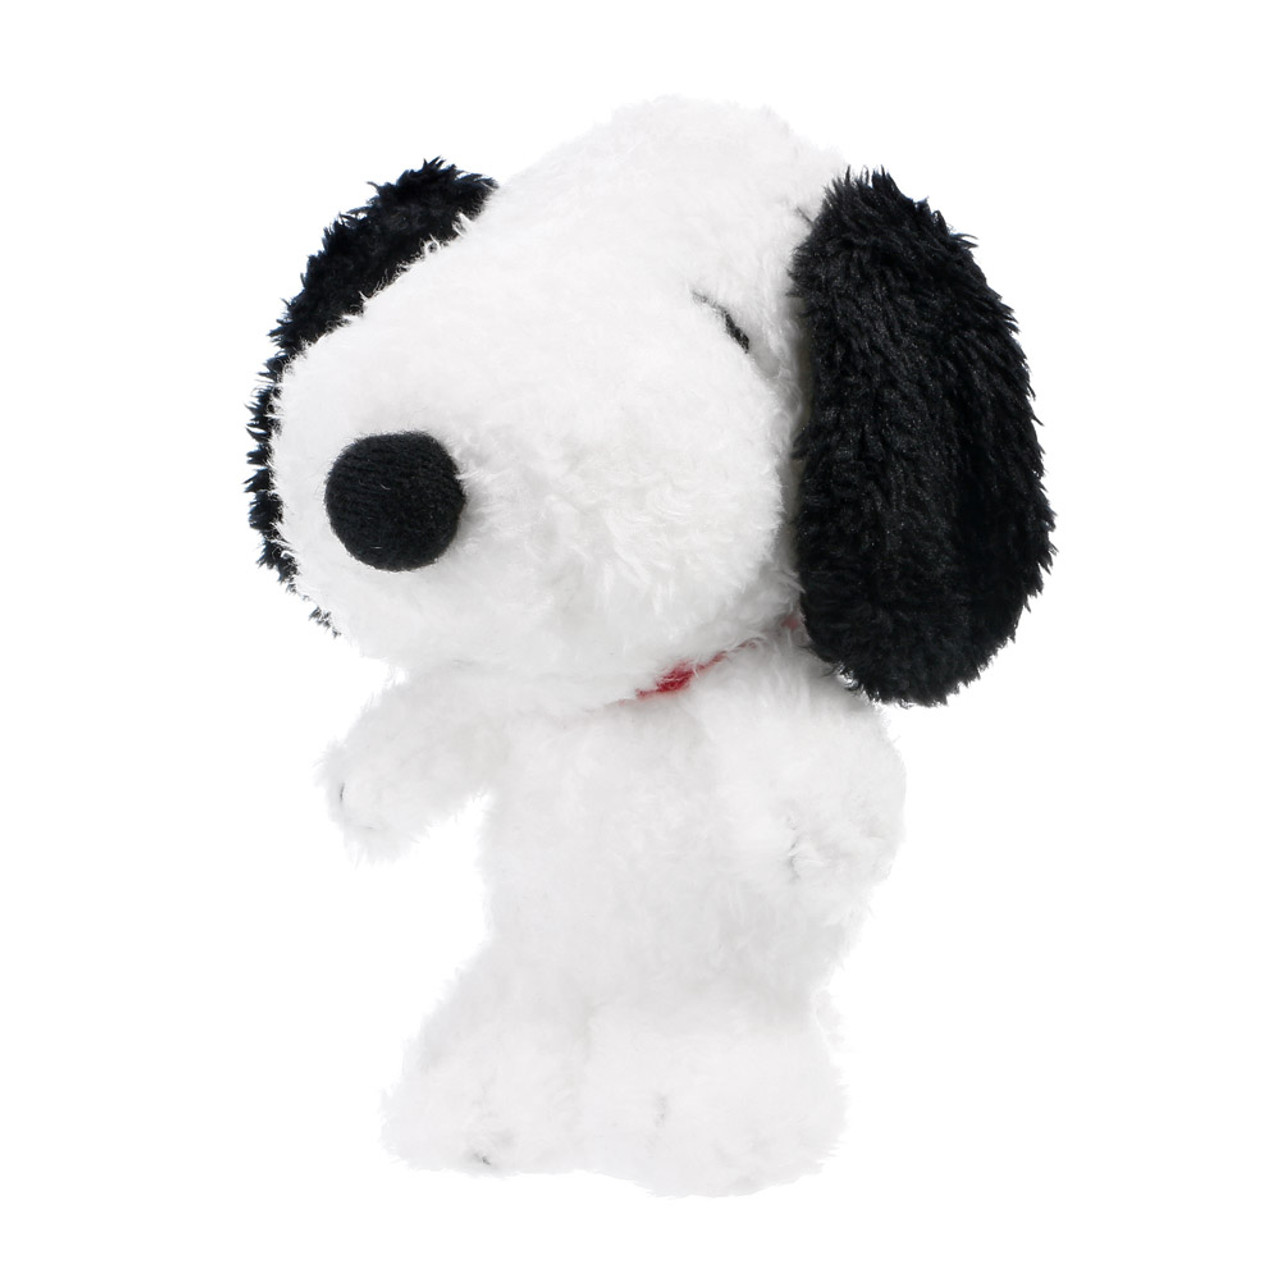 Peanuts Snoopy Big Head Mascot Plush Stuffed Animals Doll Charms